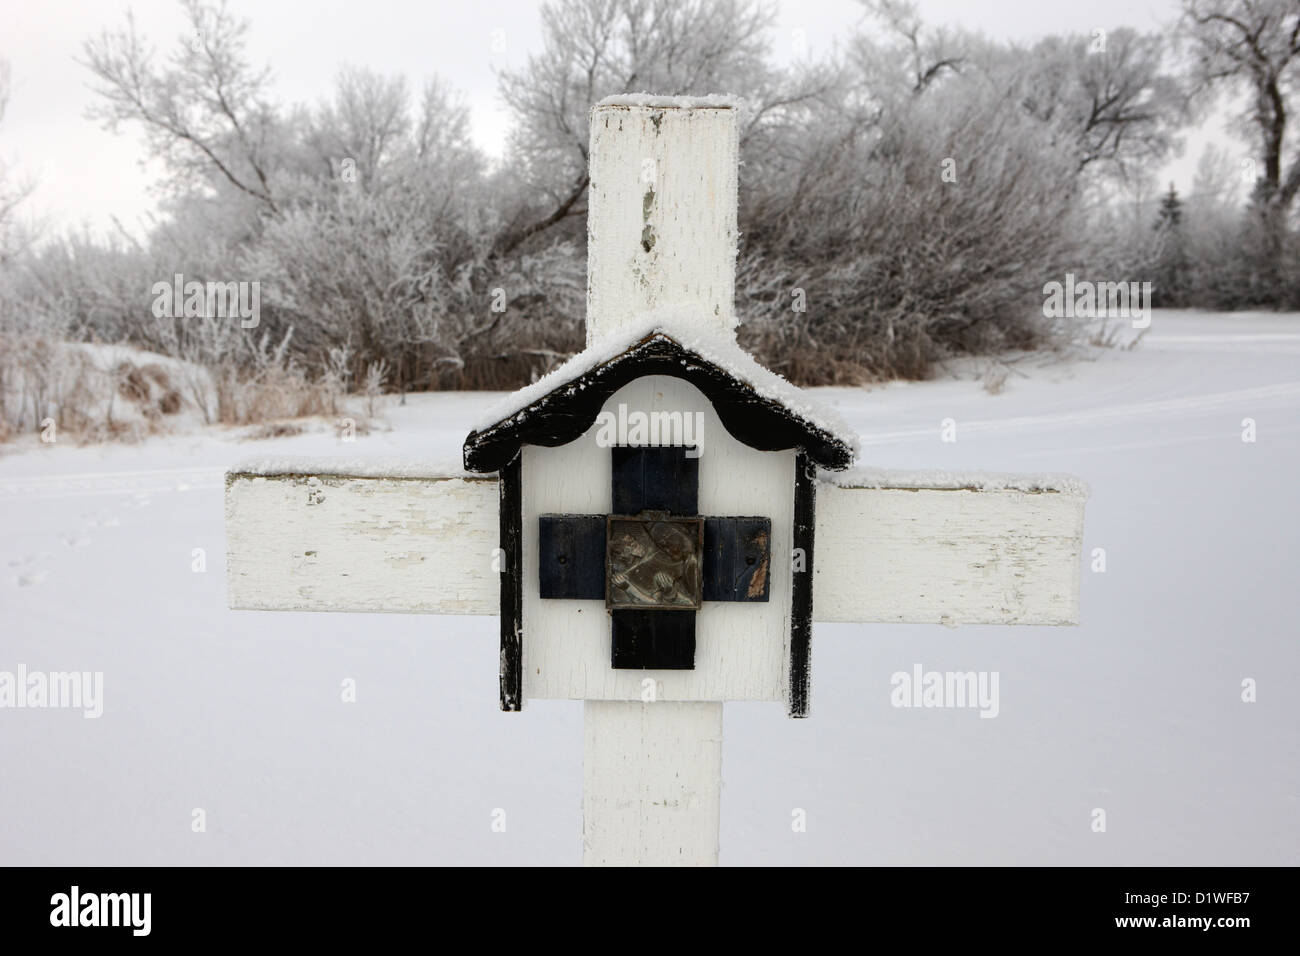 stations of the cross in a graveyard during winter in Forget Saskatchewan Canada - Stock Image